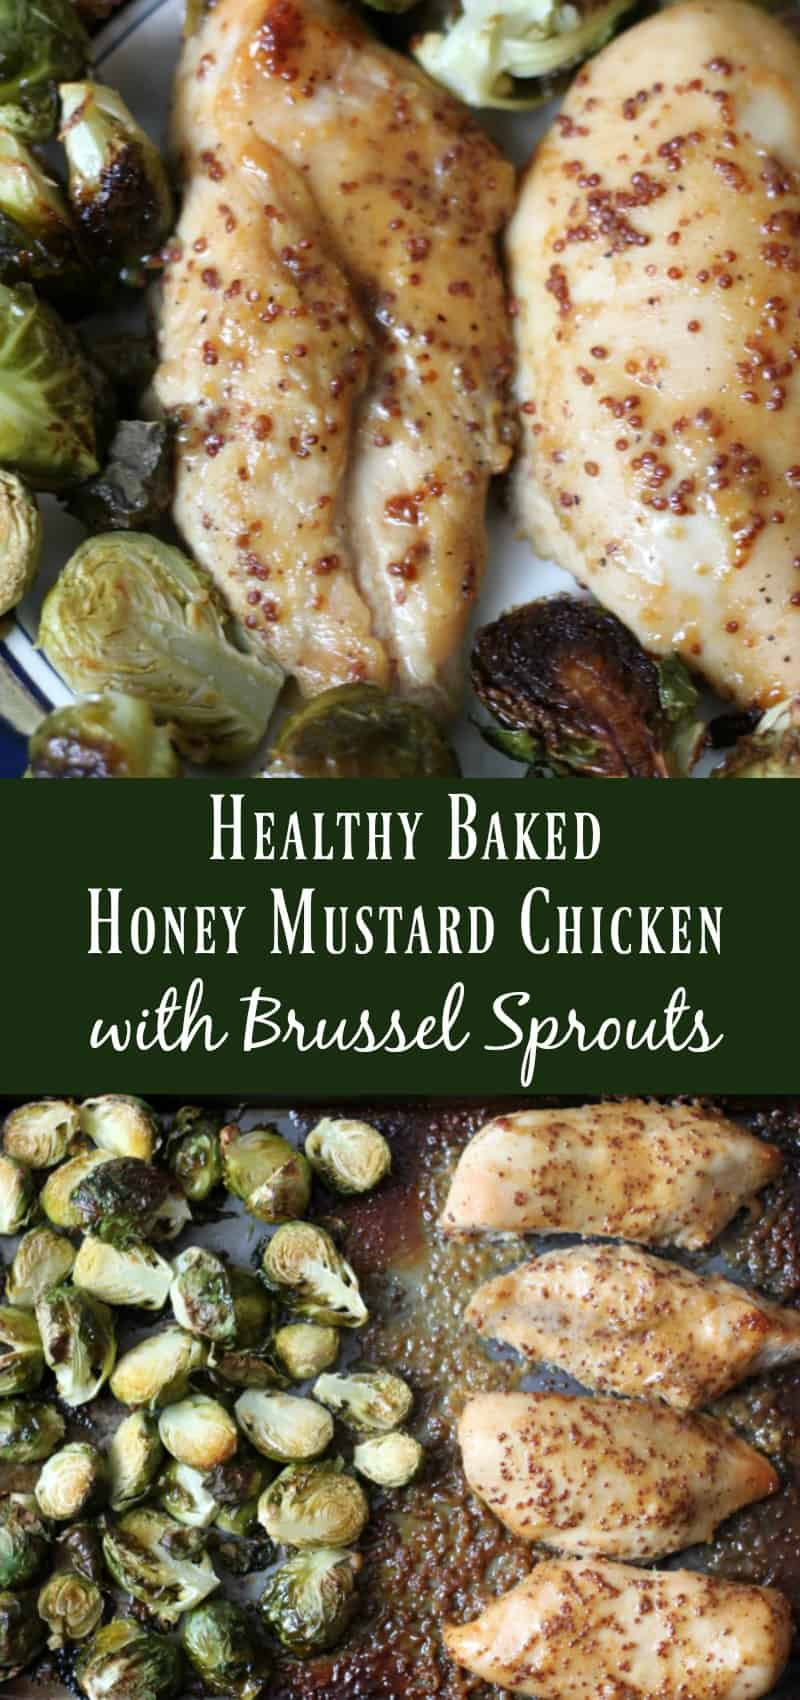 Baked honey chicken breast excellent topic